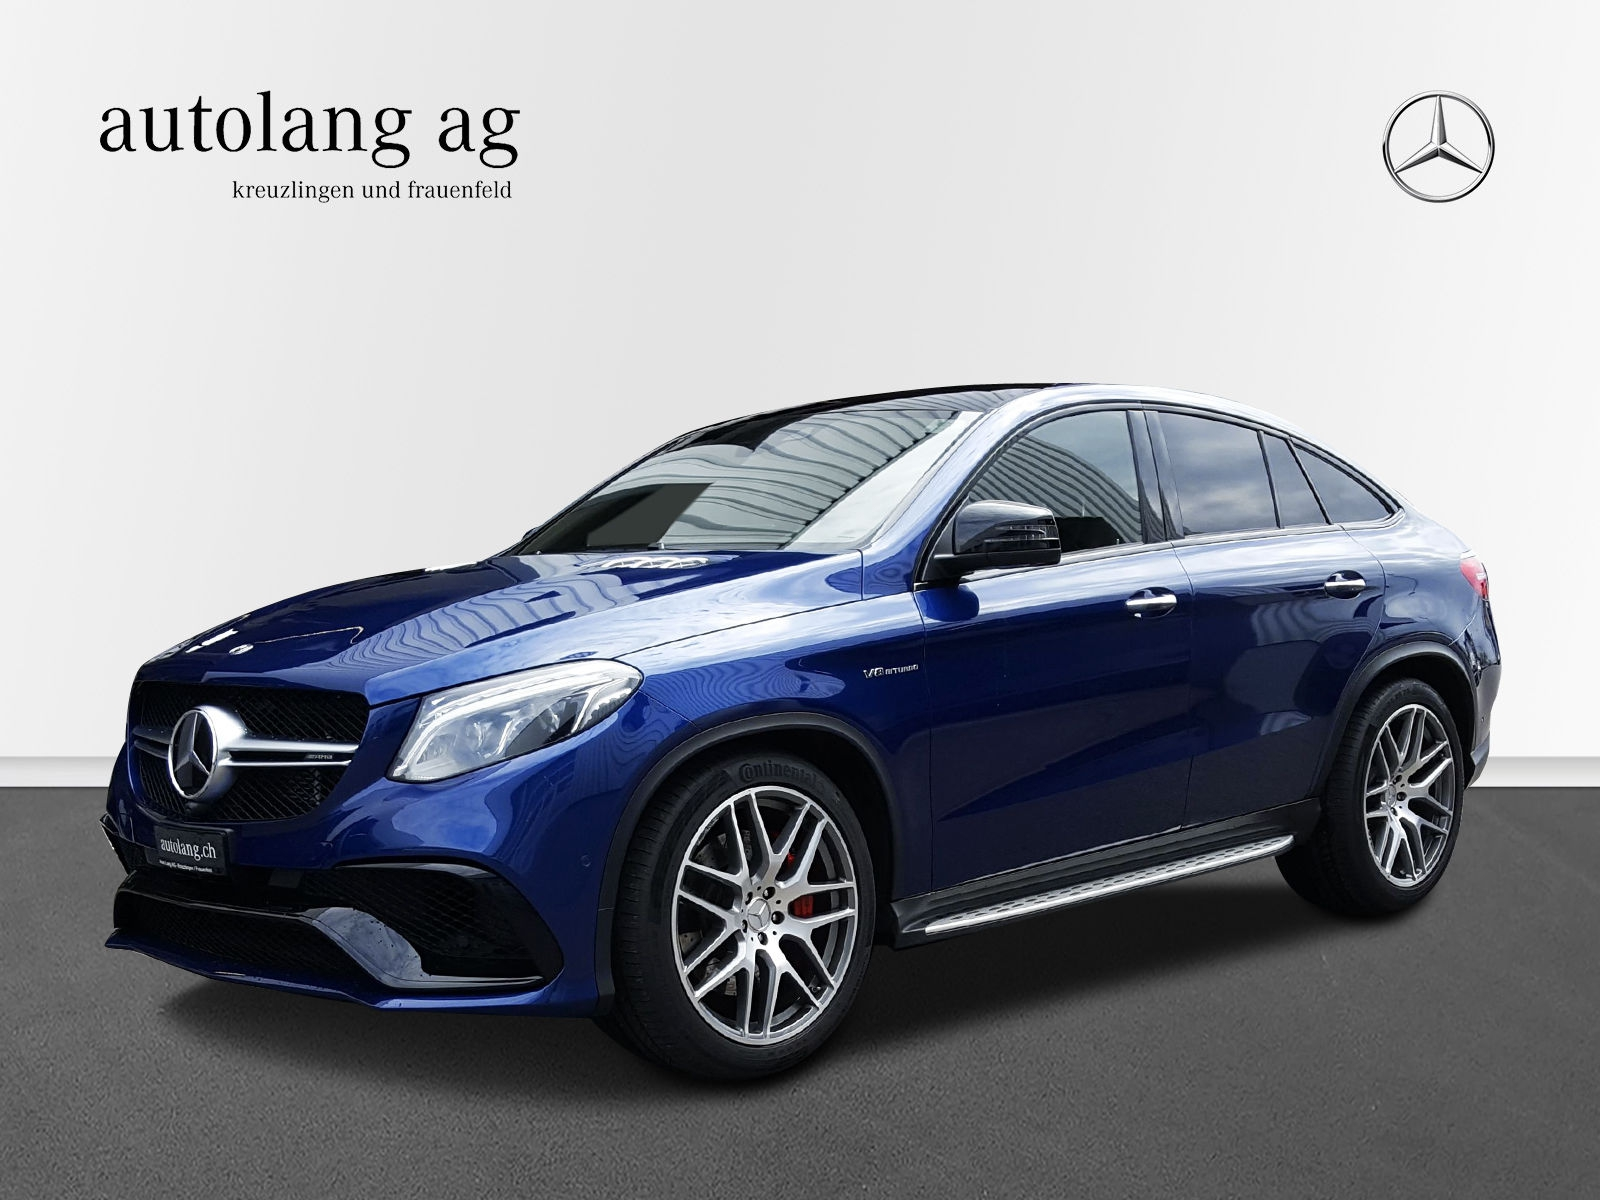 Buy Used Car Suv Mercedes Benz Gle Klasse Gle 63 S 4matic Coupe Amg 16900 Km At 99800 Chf On Carforyou Ch